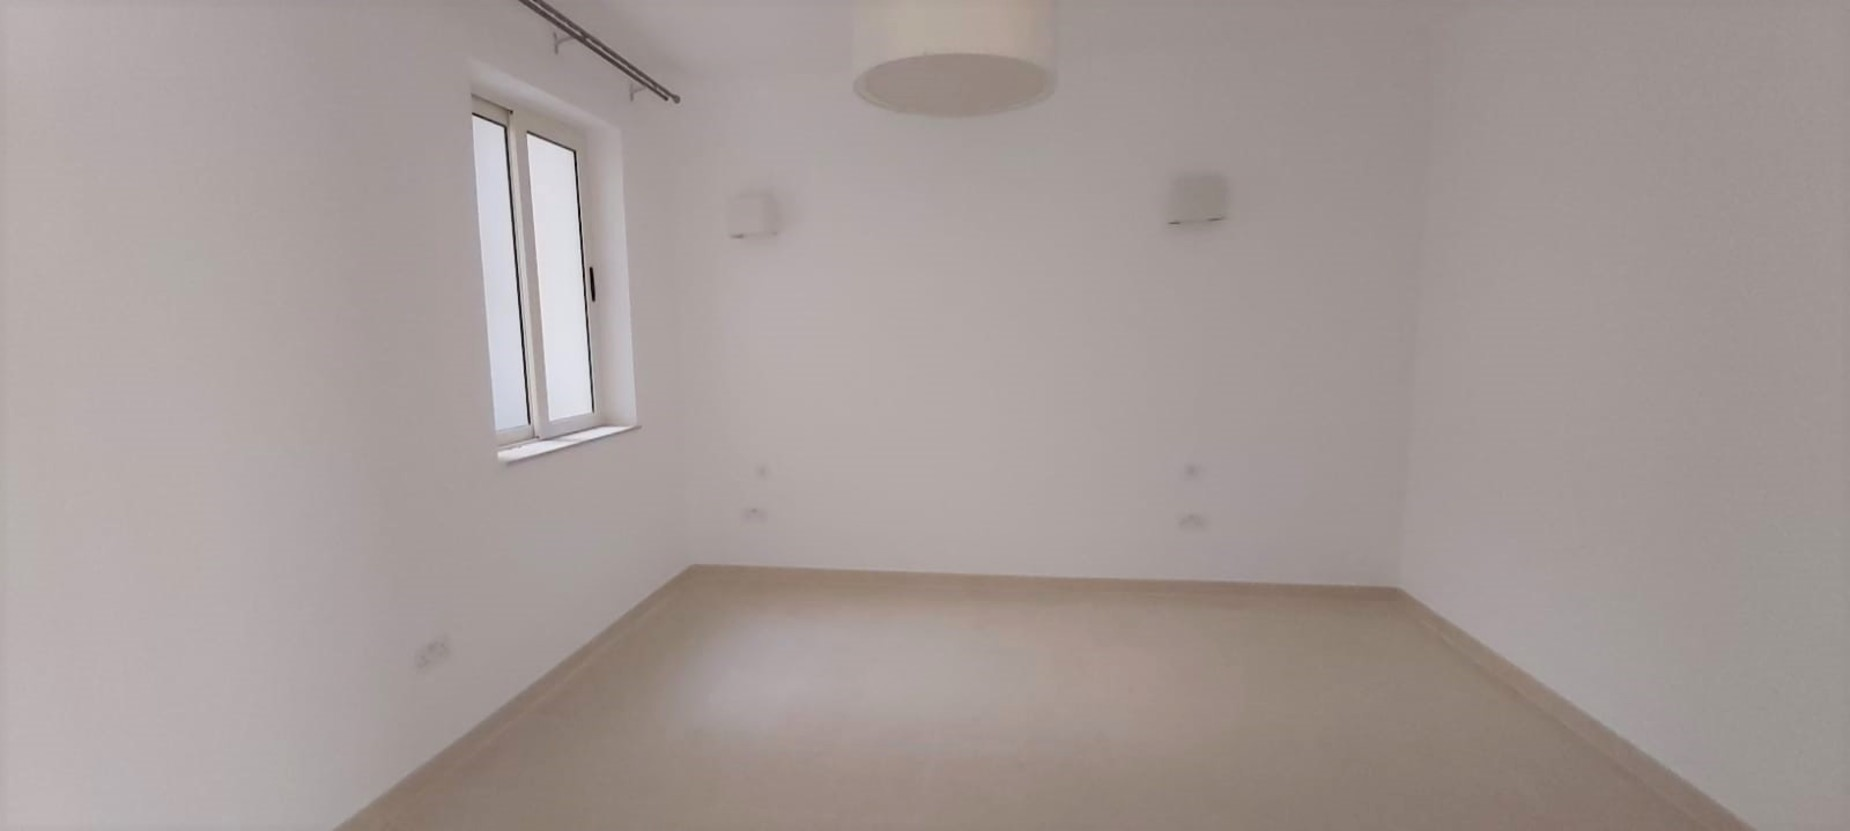 3 bed Apartment For Sale in St Julians,  - thumb 11